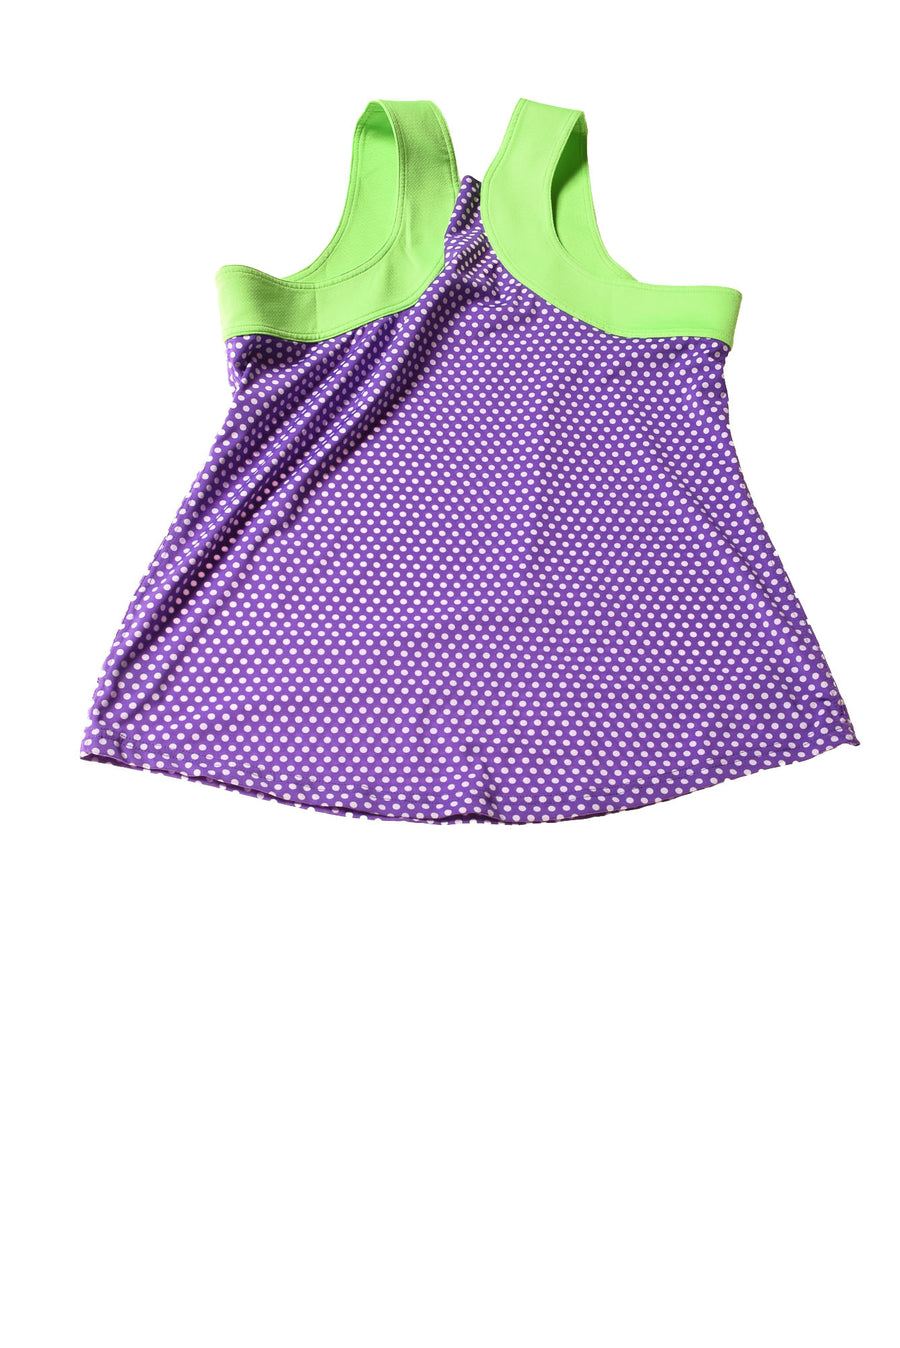 USED Jo Fit Women's Top X-Large Purple / Polka Dot